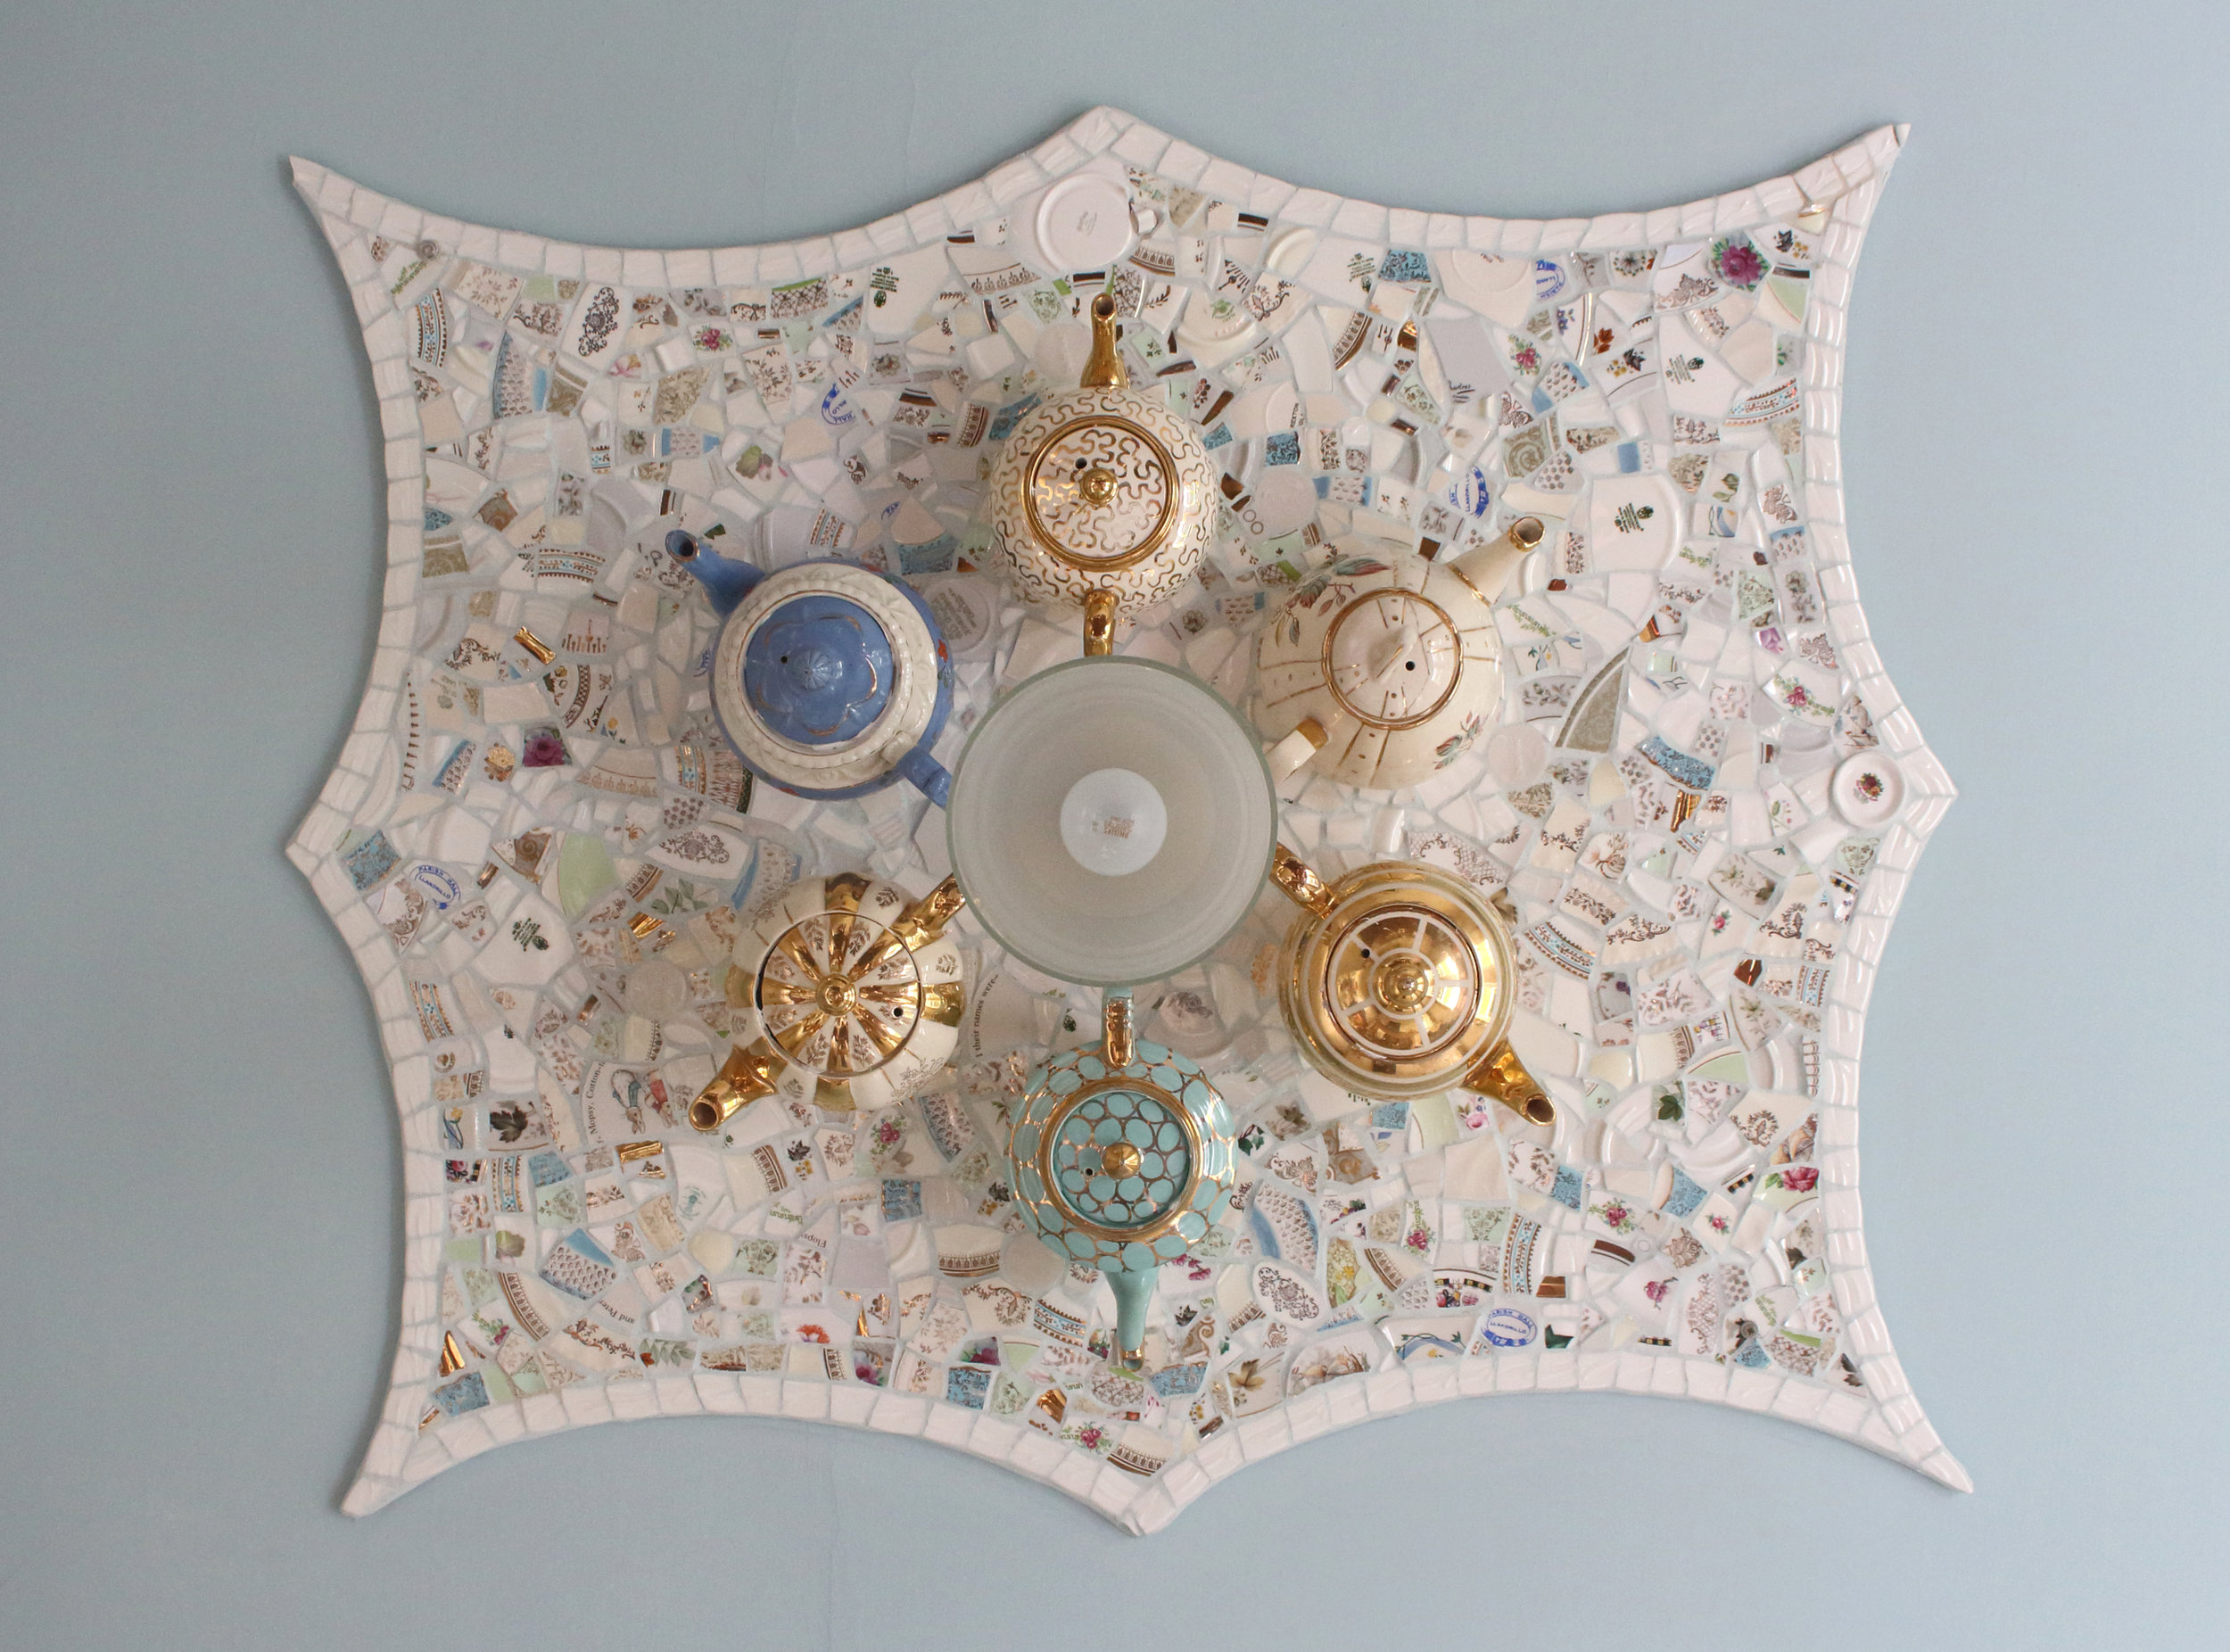 Antique teapot ceiling mosaic. This mosaic was built using recycled antique china and porcelain teapots fixed upside down onto the ceiling with a recycled china plate background ceiling rose and central light fixing. I was reminded of my love of the story of Alice in Wonderland as a little girl.  Approx. 45ins. x 36 ins.